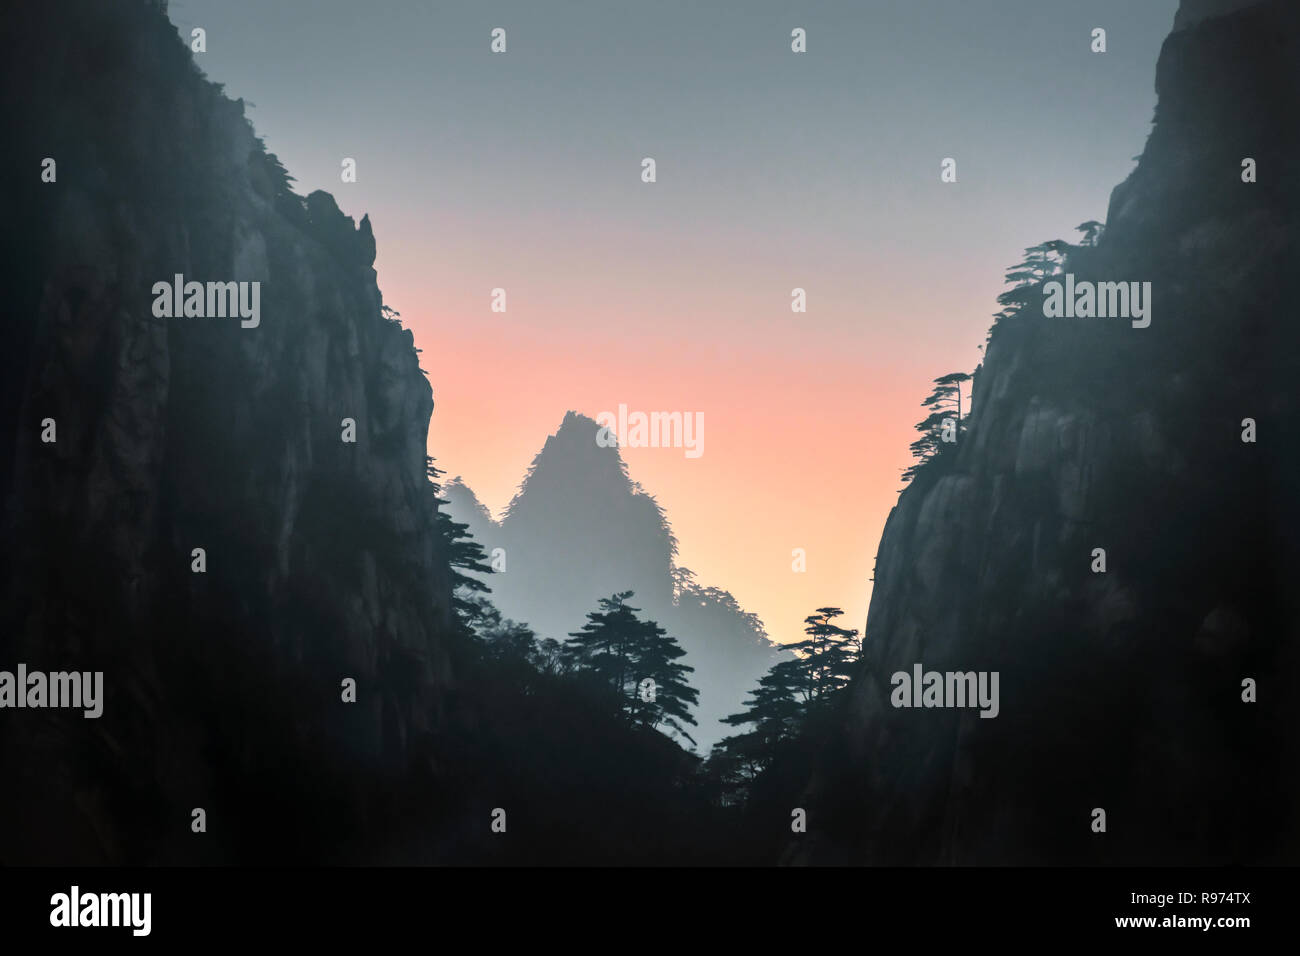 Sunset and mists, Huangshan, China - Stock Image